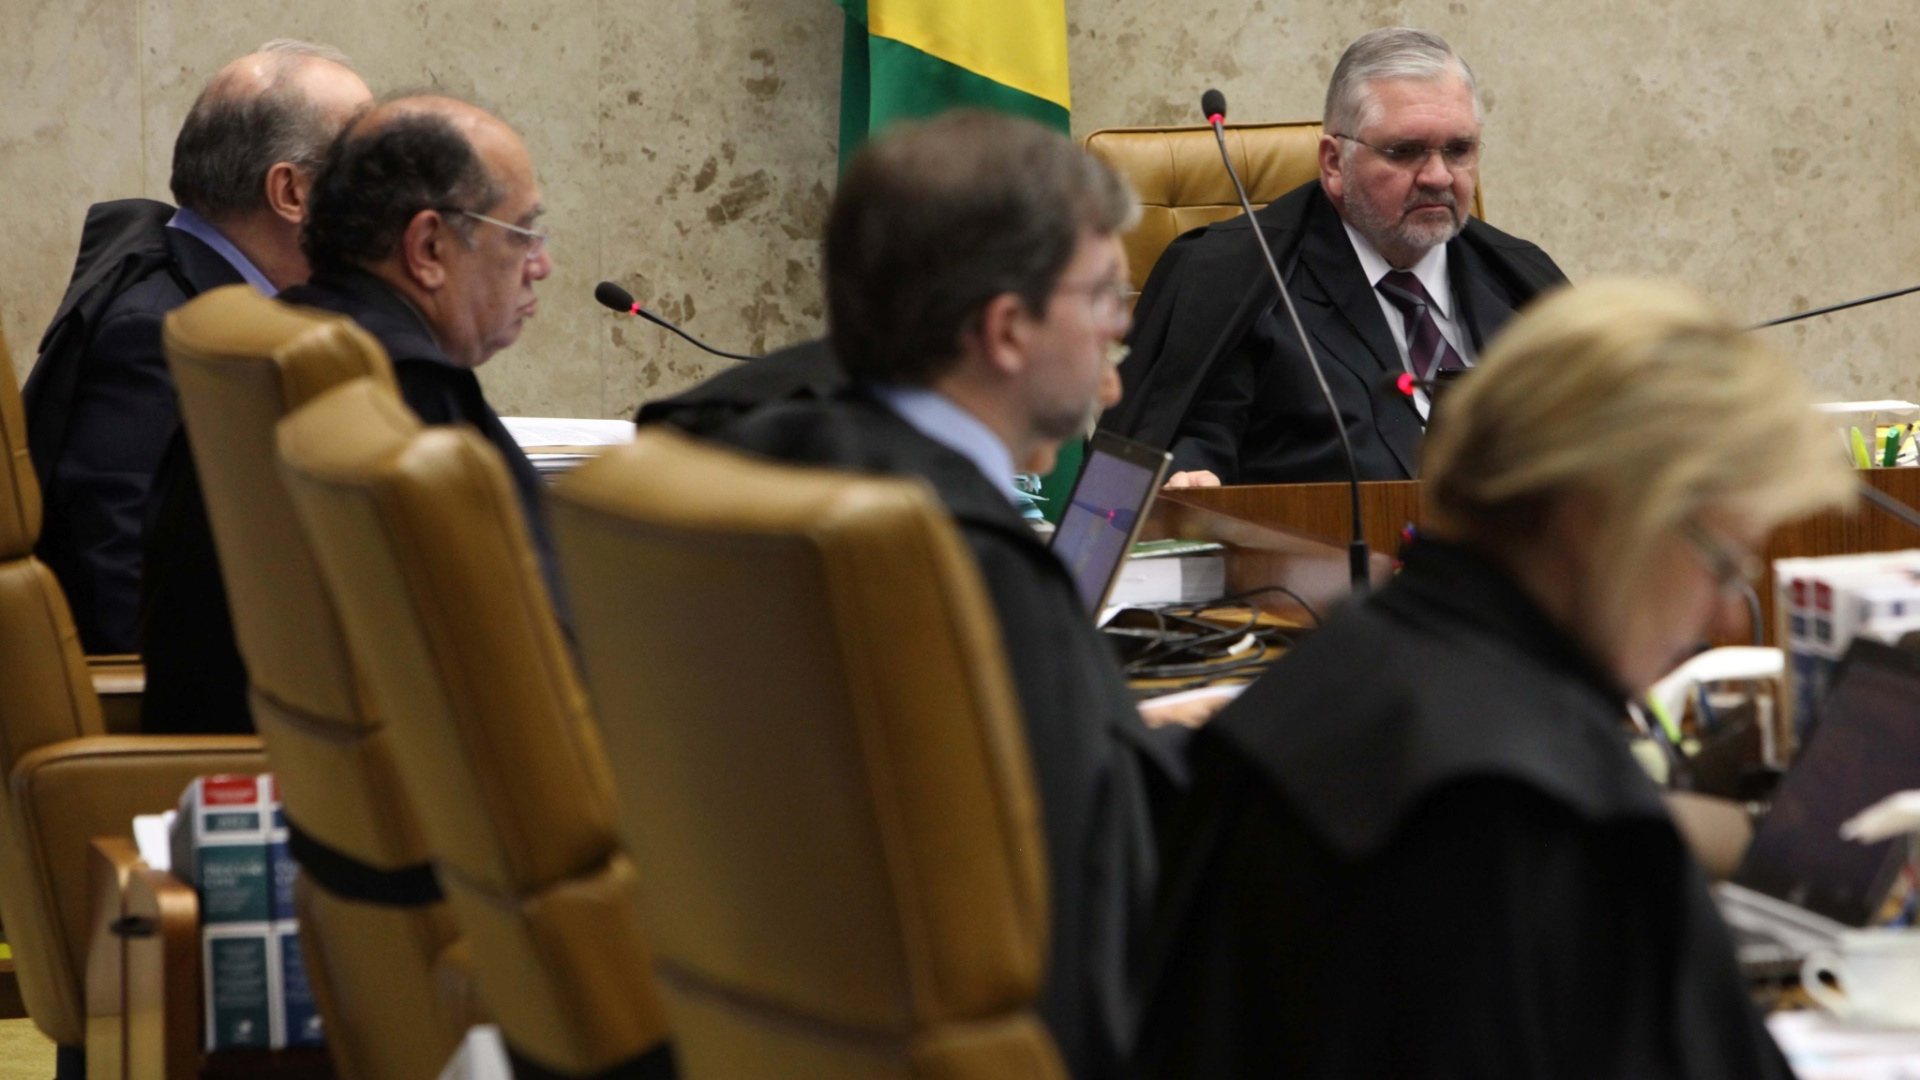 7.nov.2012 - Em destaque, o procurador-geral da Repblica, Roberto Gurgel, acompanha sesso de julgamento do mensalo no Supremo Tribunal Federal. Depois de quase duas semanas  de intervalo, o julgamento foi retomado com a concluso da votao das penas a serem aplicadas a Ramon Hollerbach, ex-scio do publicitrio Marcos Valrio